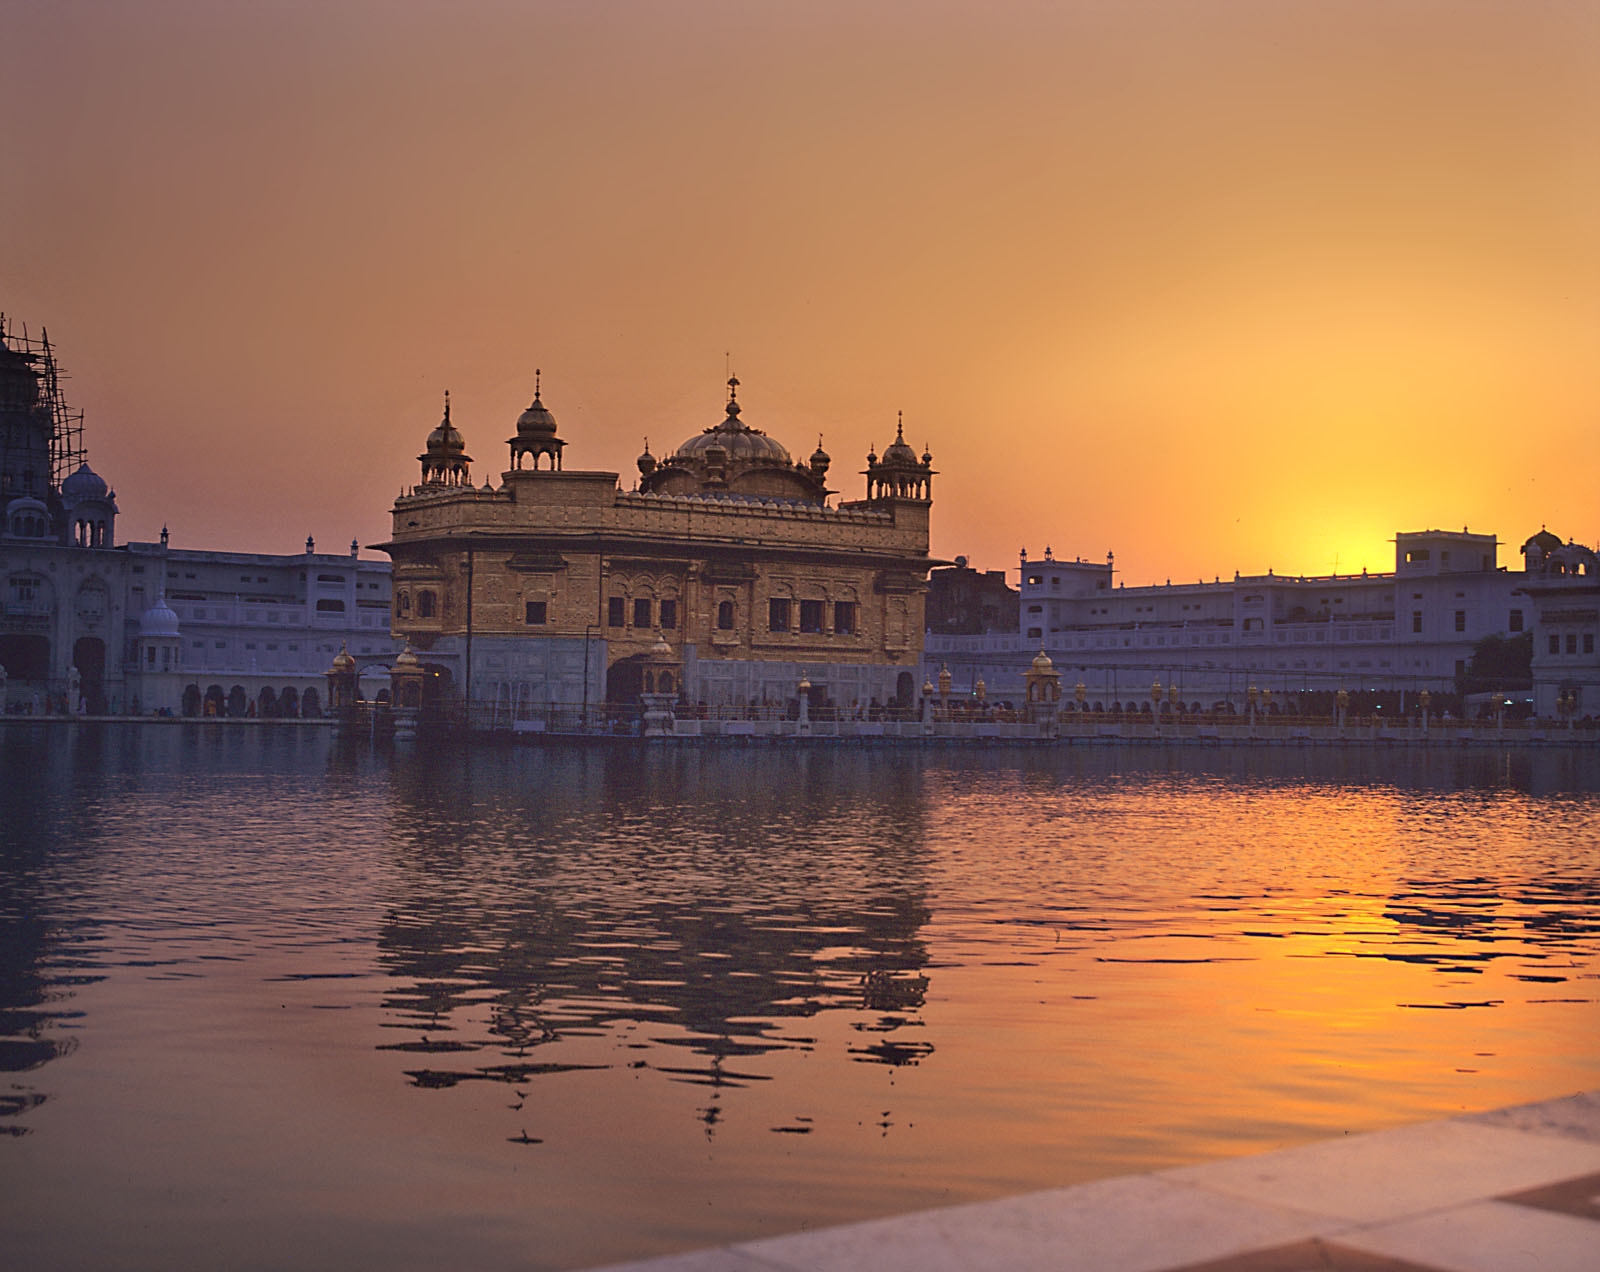 Photograph Golden Temple, Amritsar by Tibor Mester on 500px